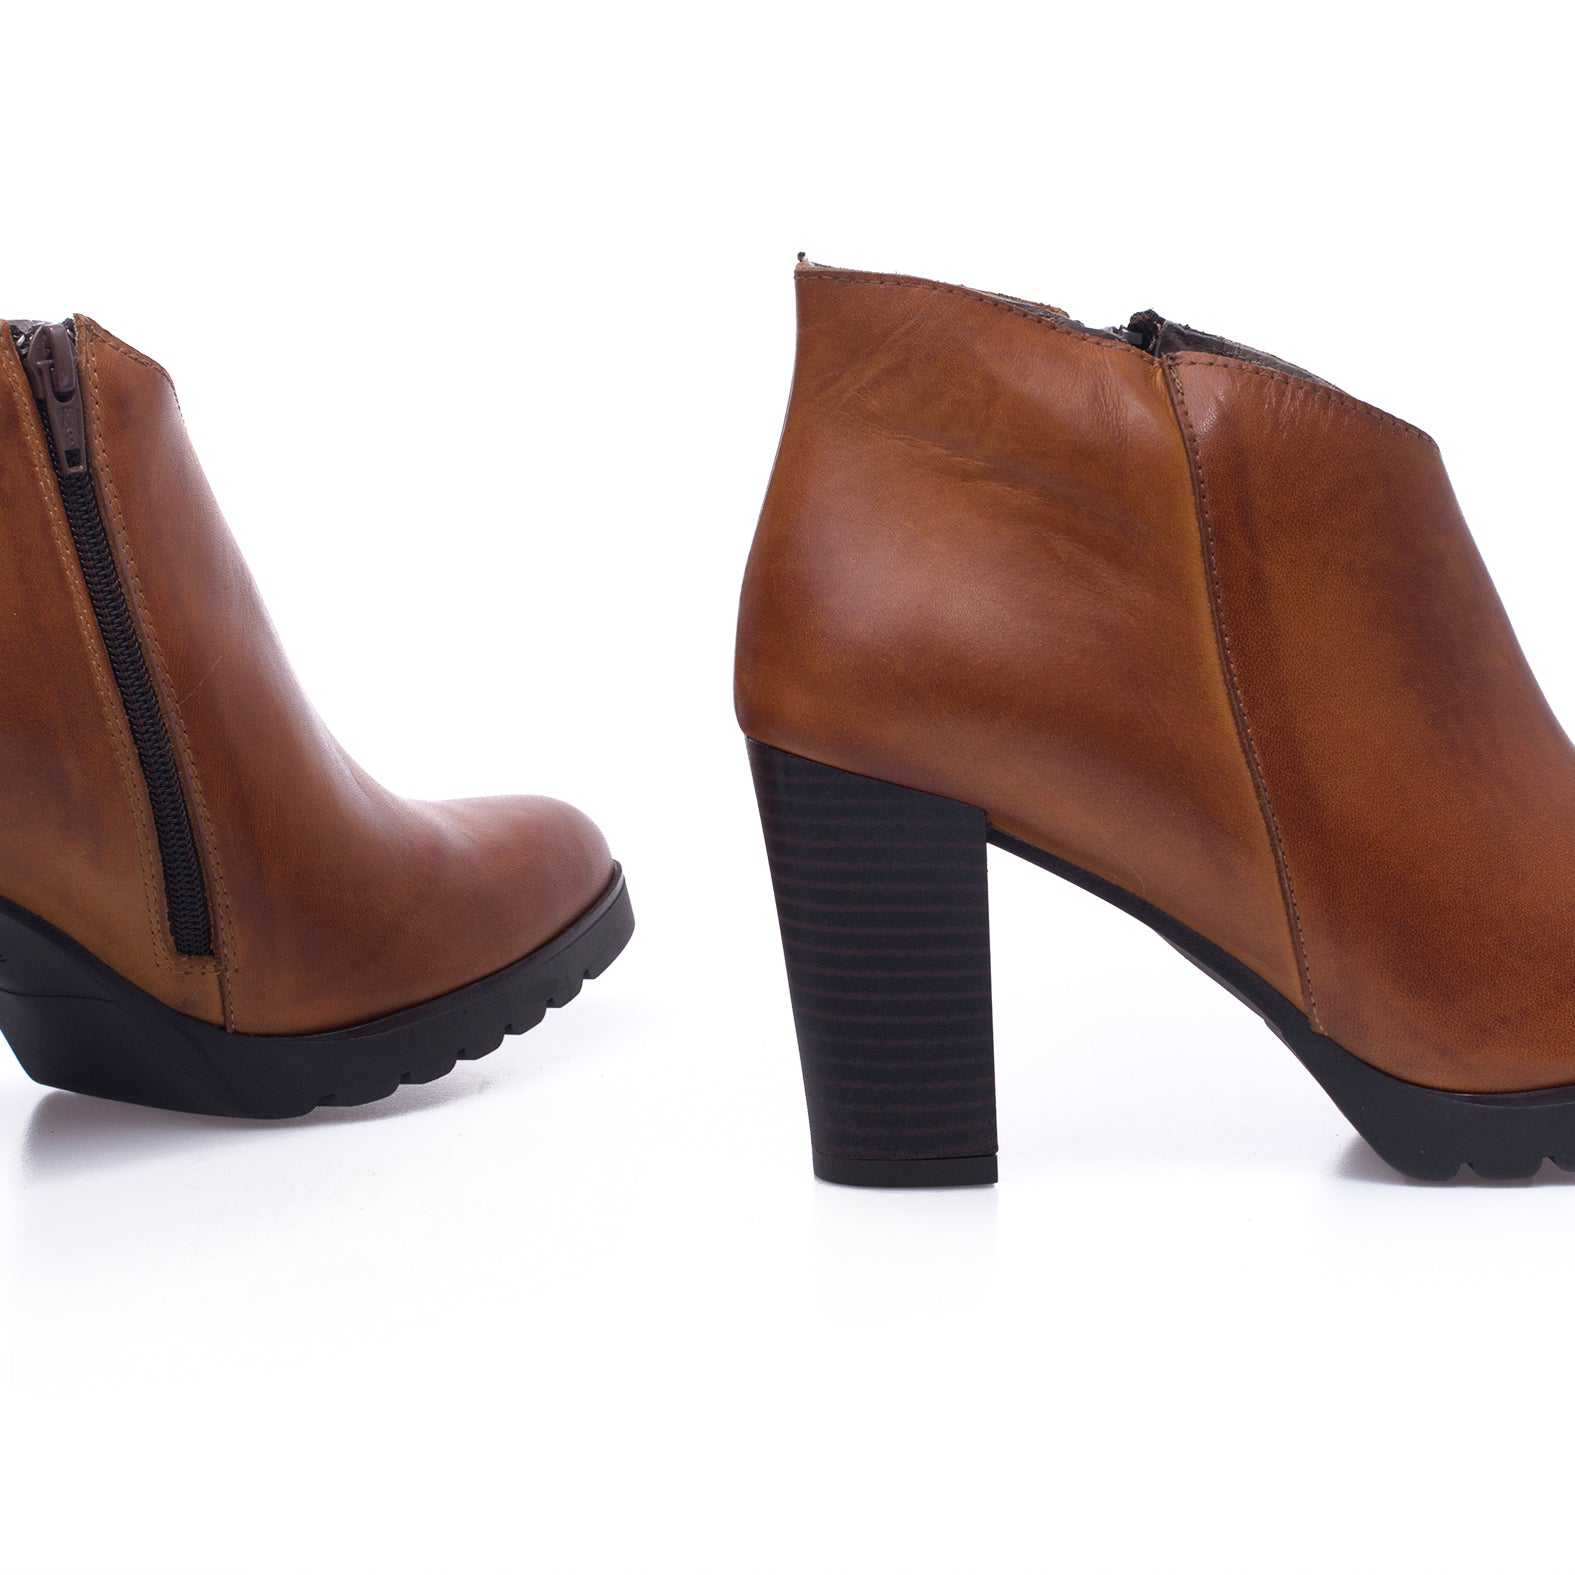 talon BOTTINES pour CLASSIC Bottines CAMEL à – femme 80kOPwn